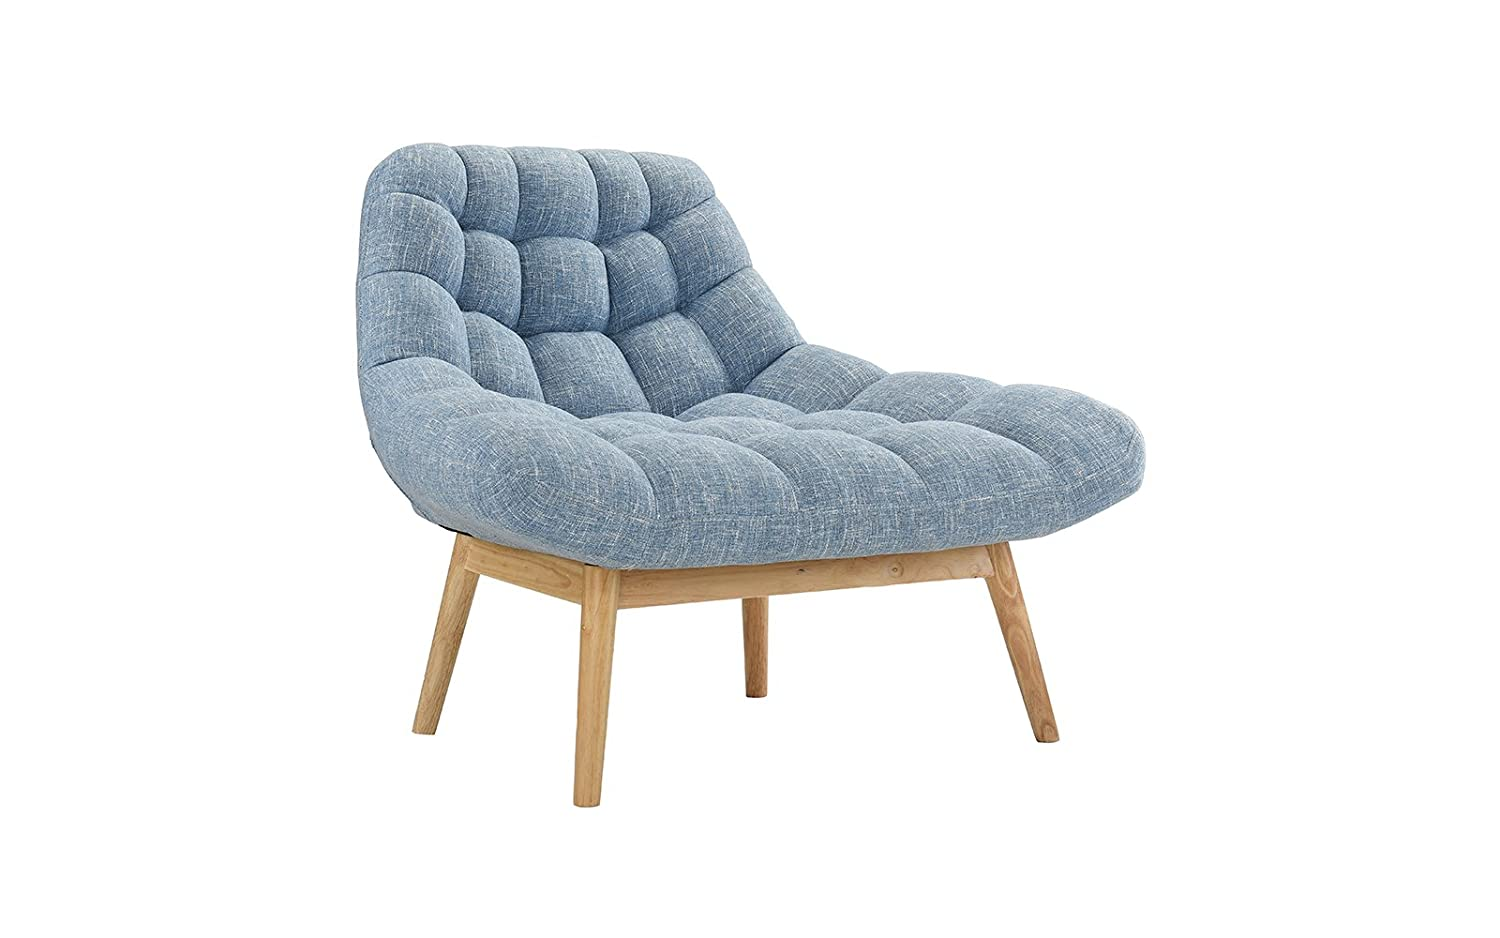 Modern Linen Plush Living Room Lounge Accent Chair (Blue) Sofamania ARM42